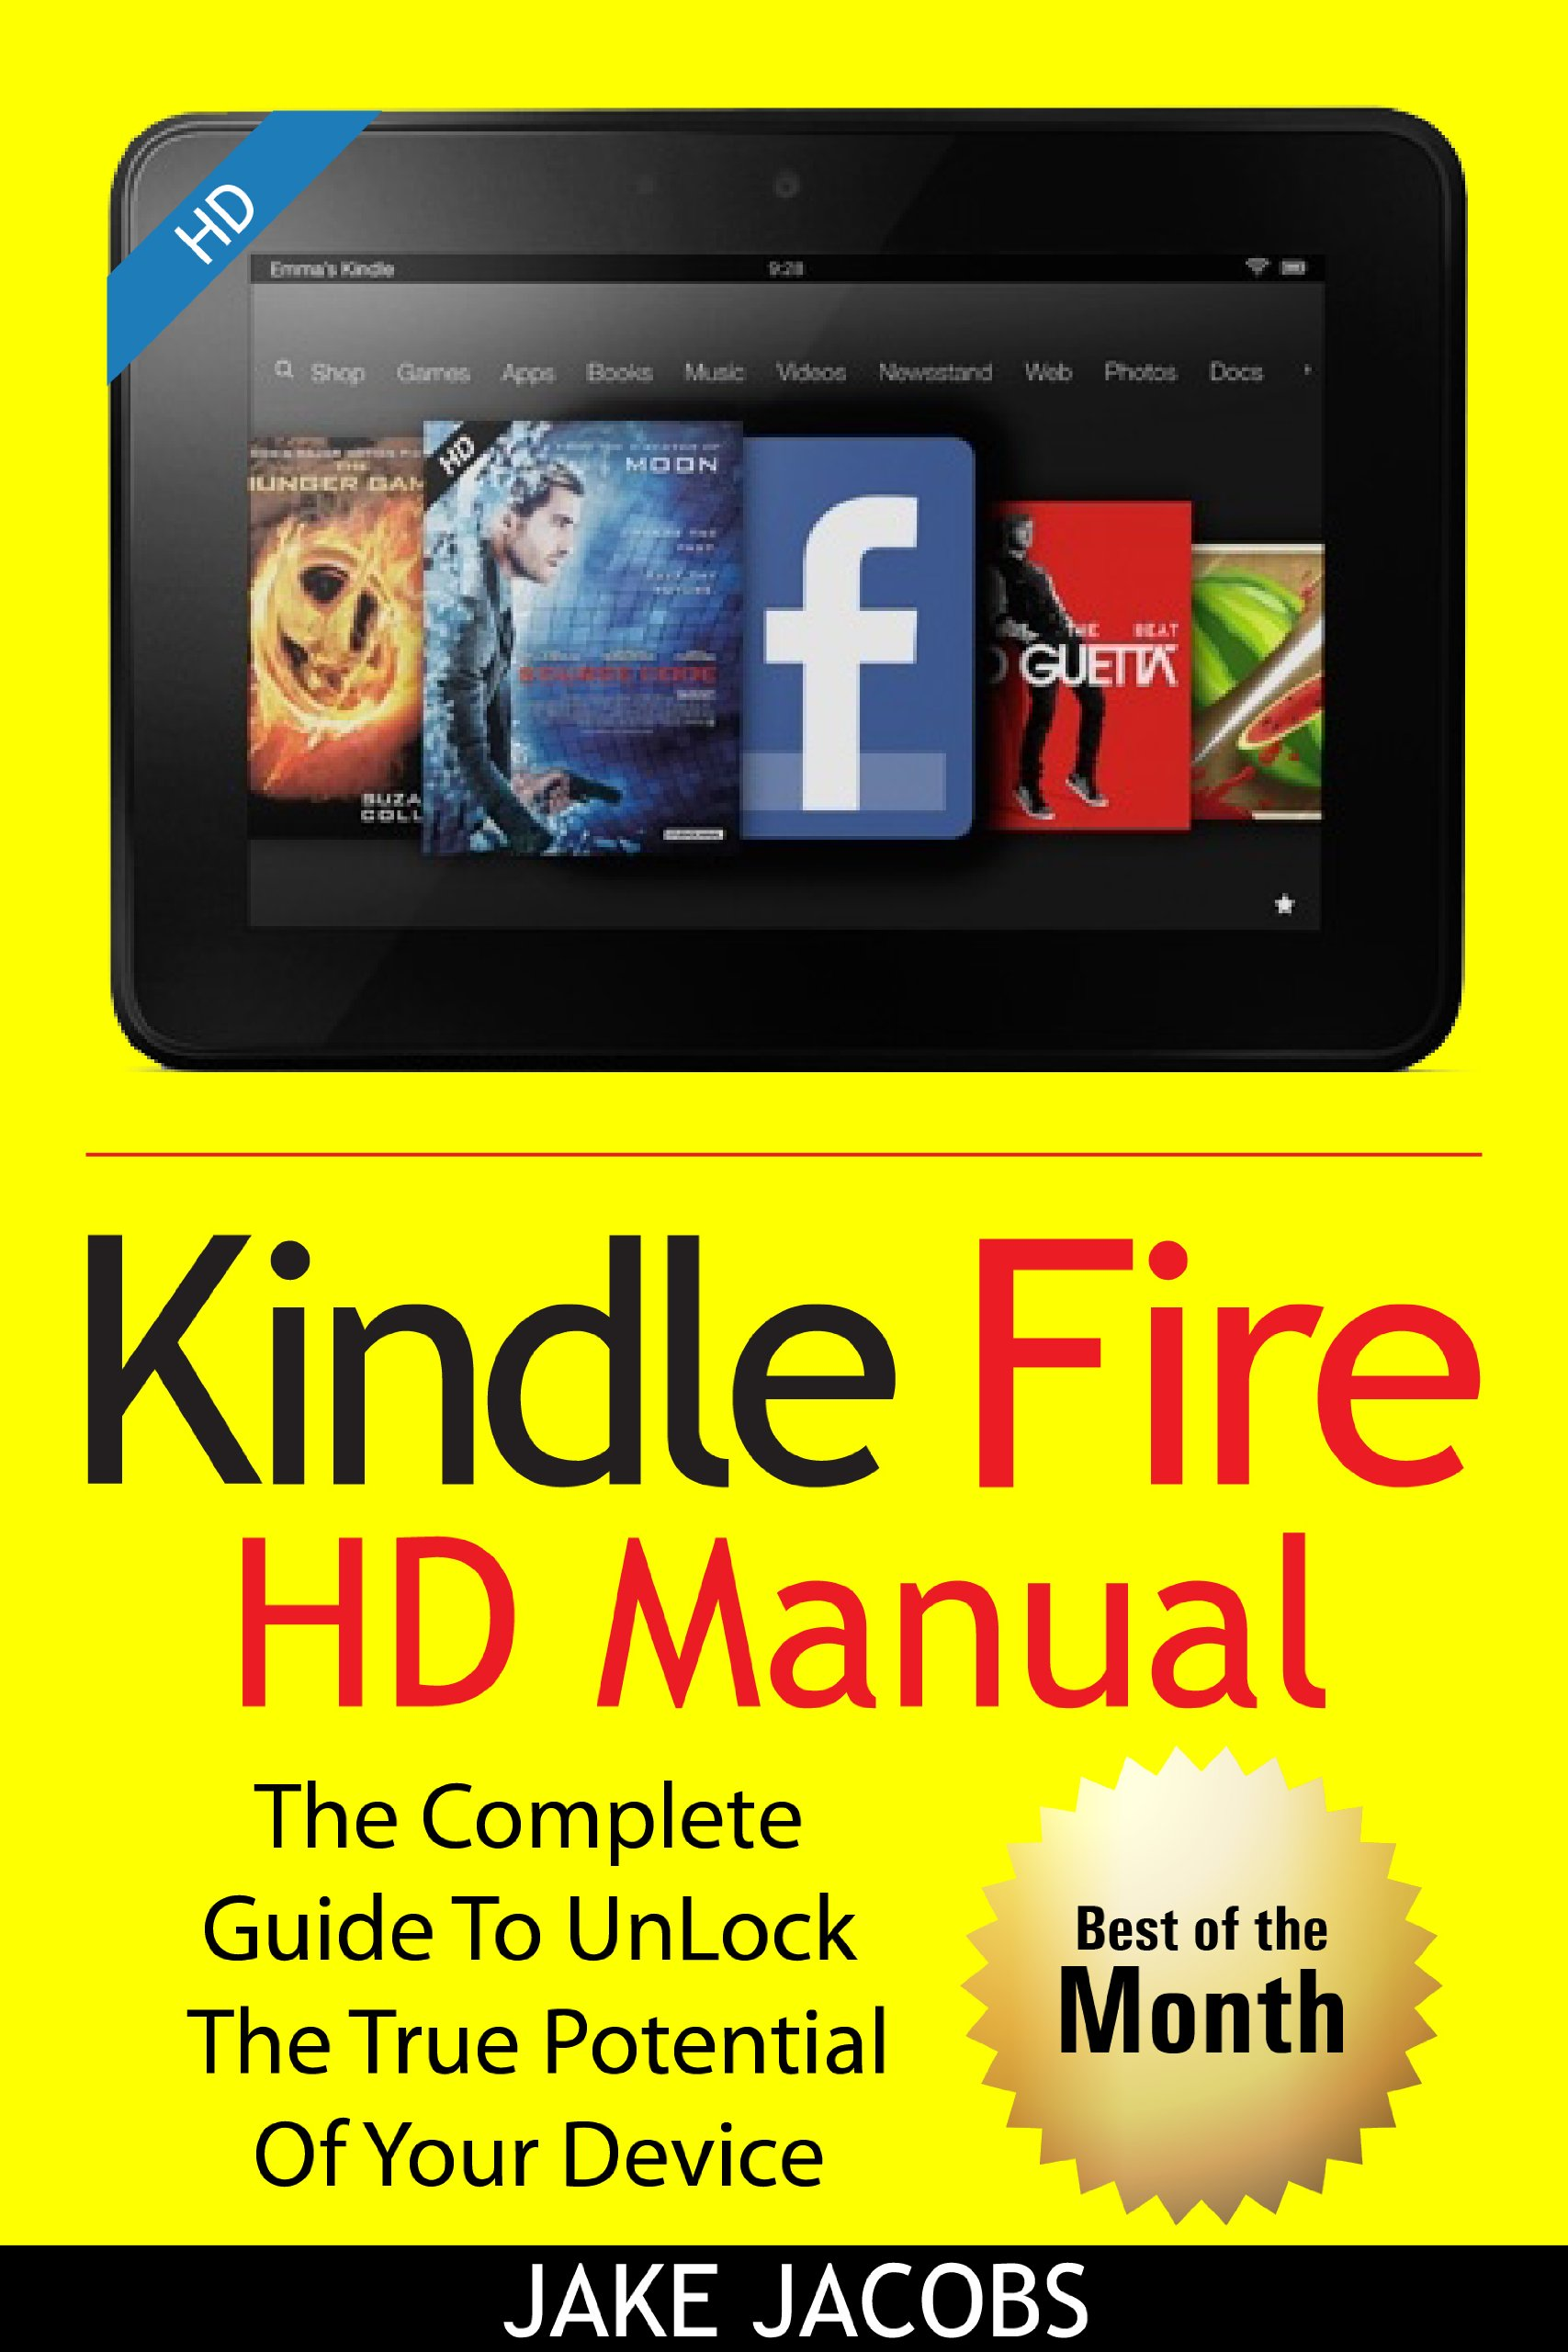 Amazon.com: New Kindle Fire HD Manual: The Complete User Guide With  Instructions, Tutorial to Unlock The True Potential of Your Device in 30  Minutes (Aug ...